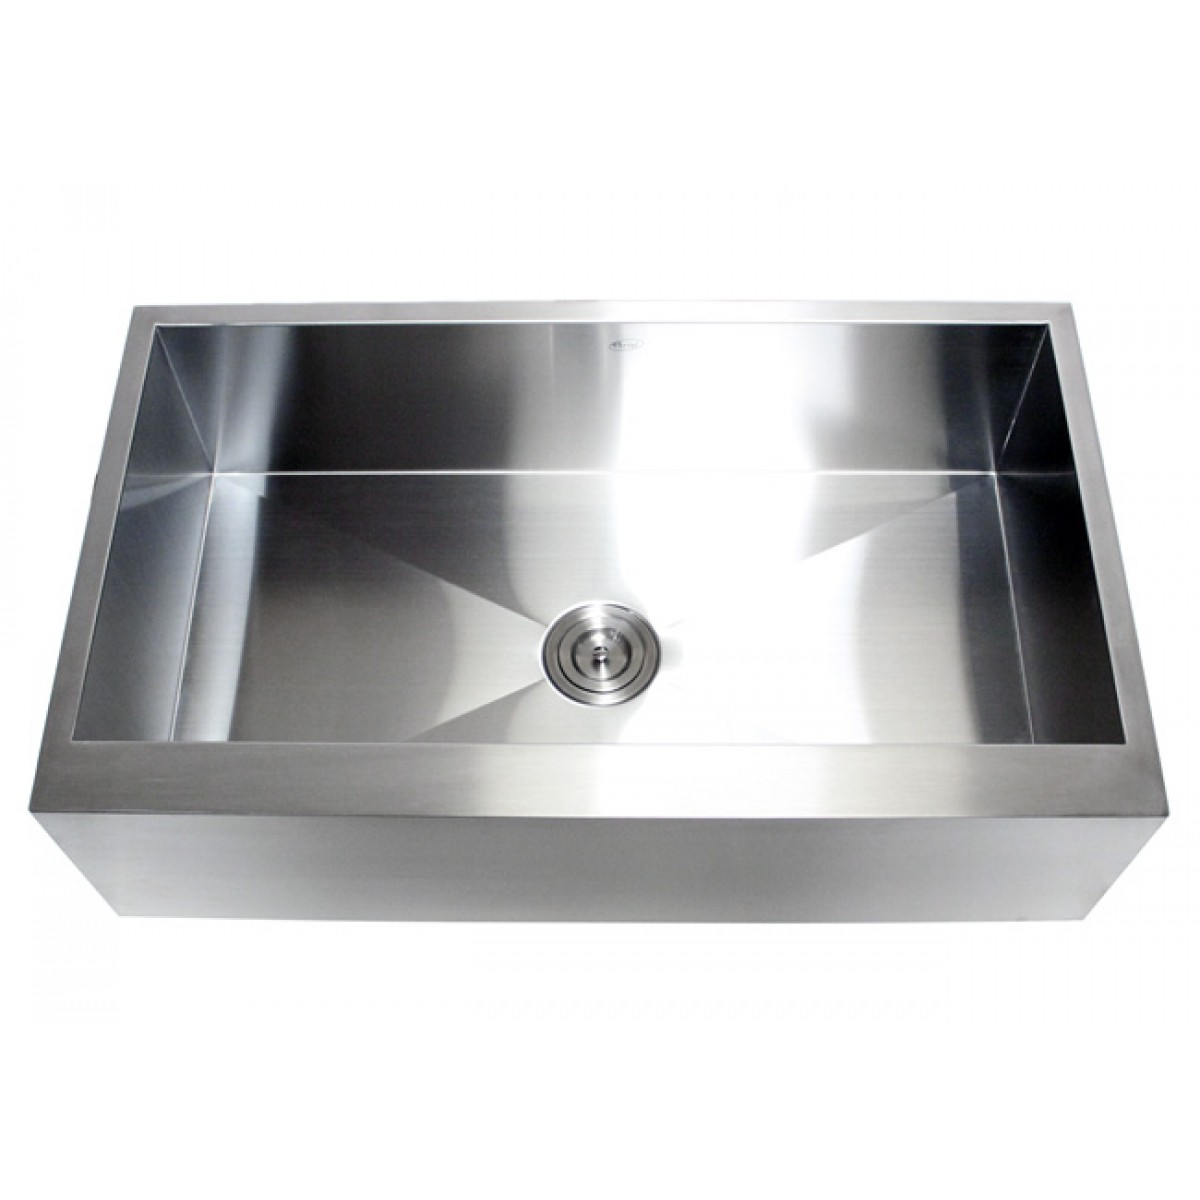 36 inch stainless steel single bowl flat front farm apron Stainless steel farmhouse sink